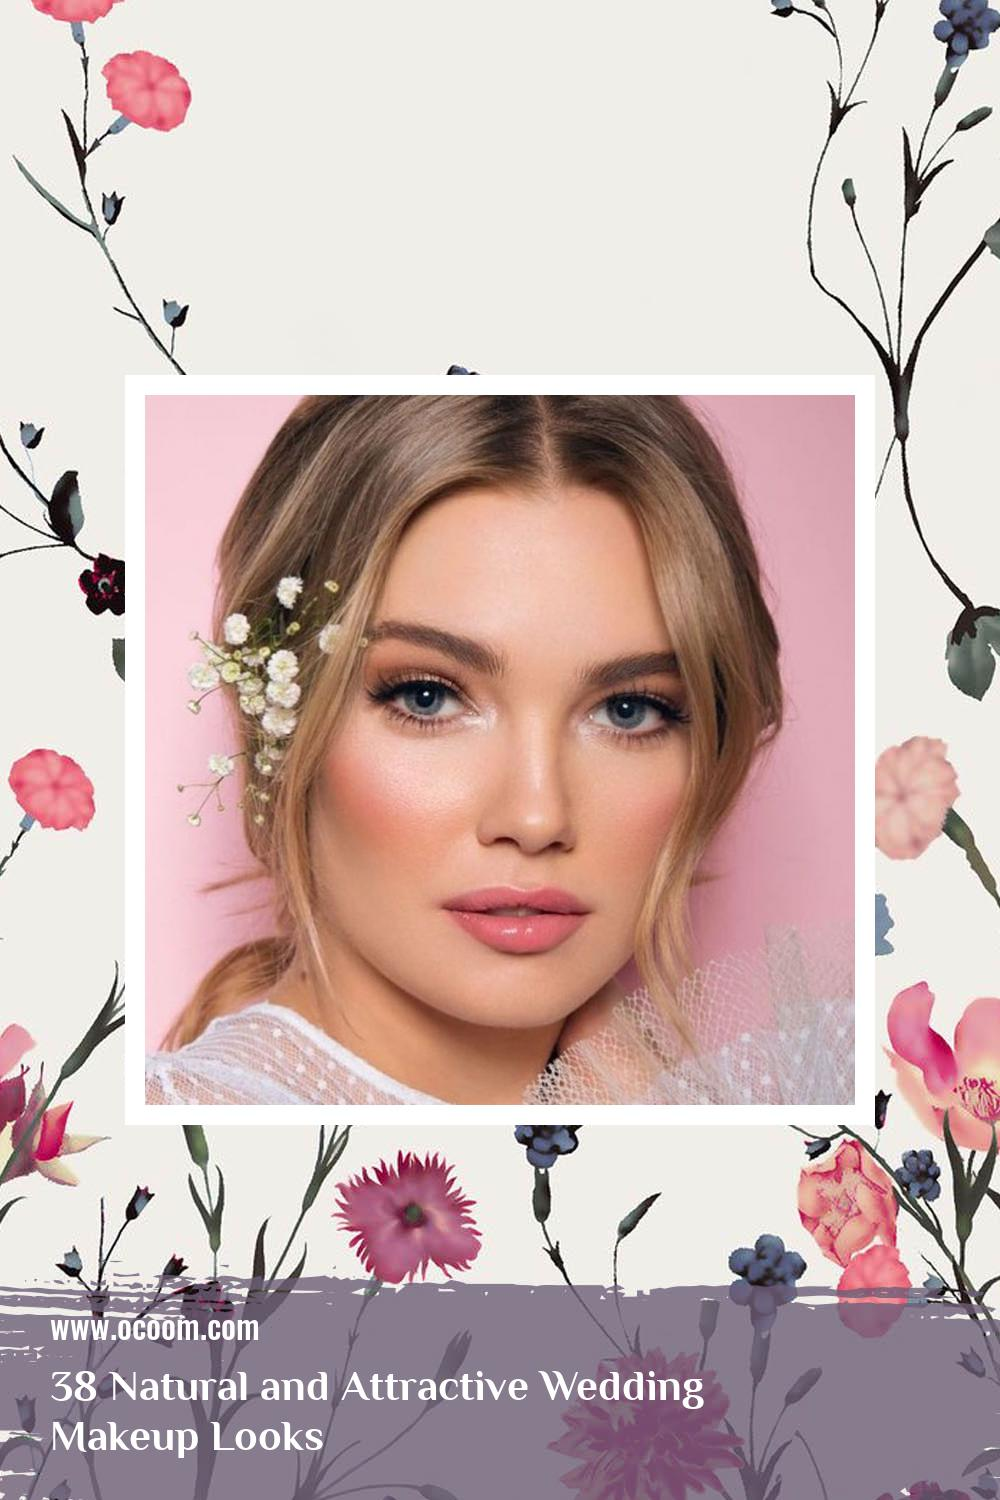 38 Natural and Attractive Wedding Makeup Looks 17